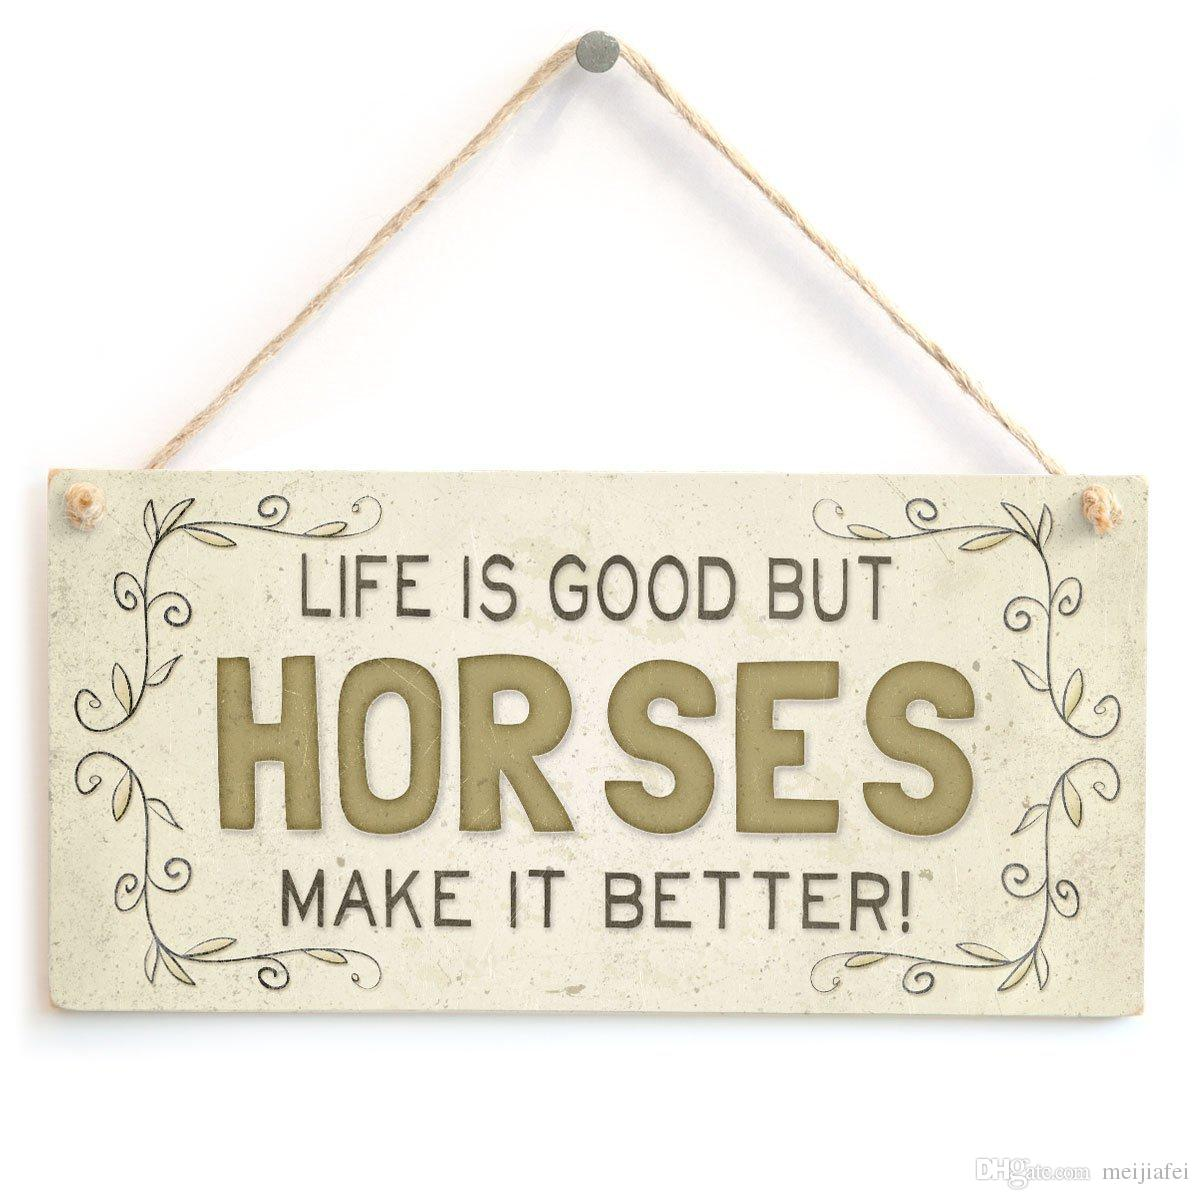 Meijiafei Life Is Good But Horses Make It Better! - Super Cute Country Home  Style Home Accessory Gift Sign for Horse Lovers 10